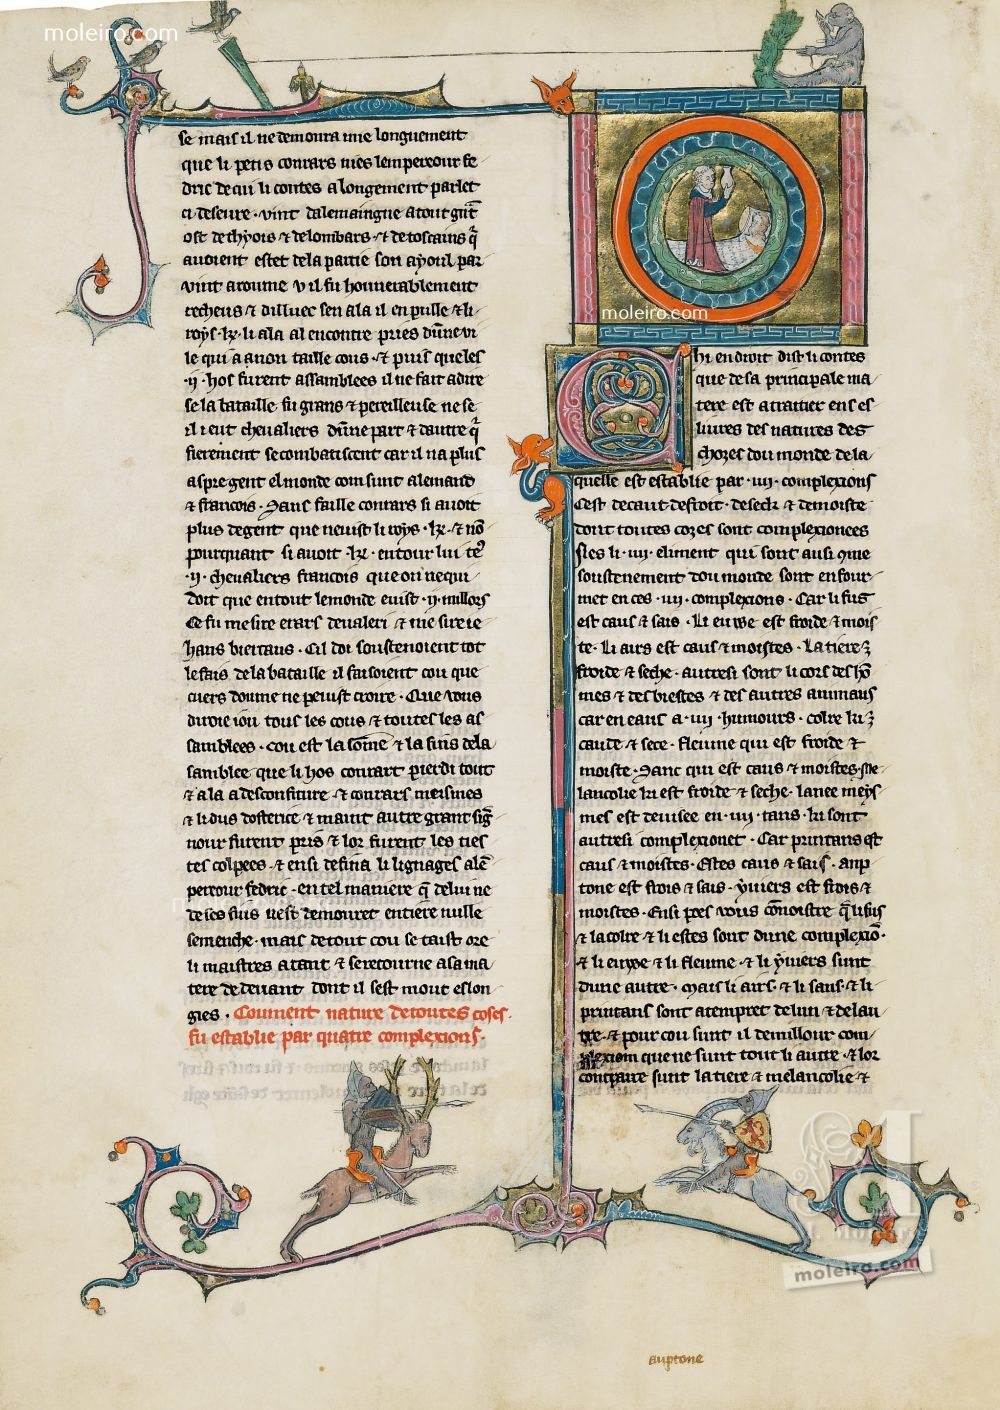 Book of Treasures f. 28v, The four elements that comprise the nature of men